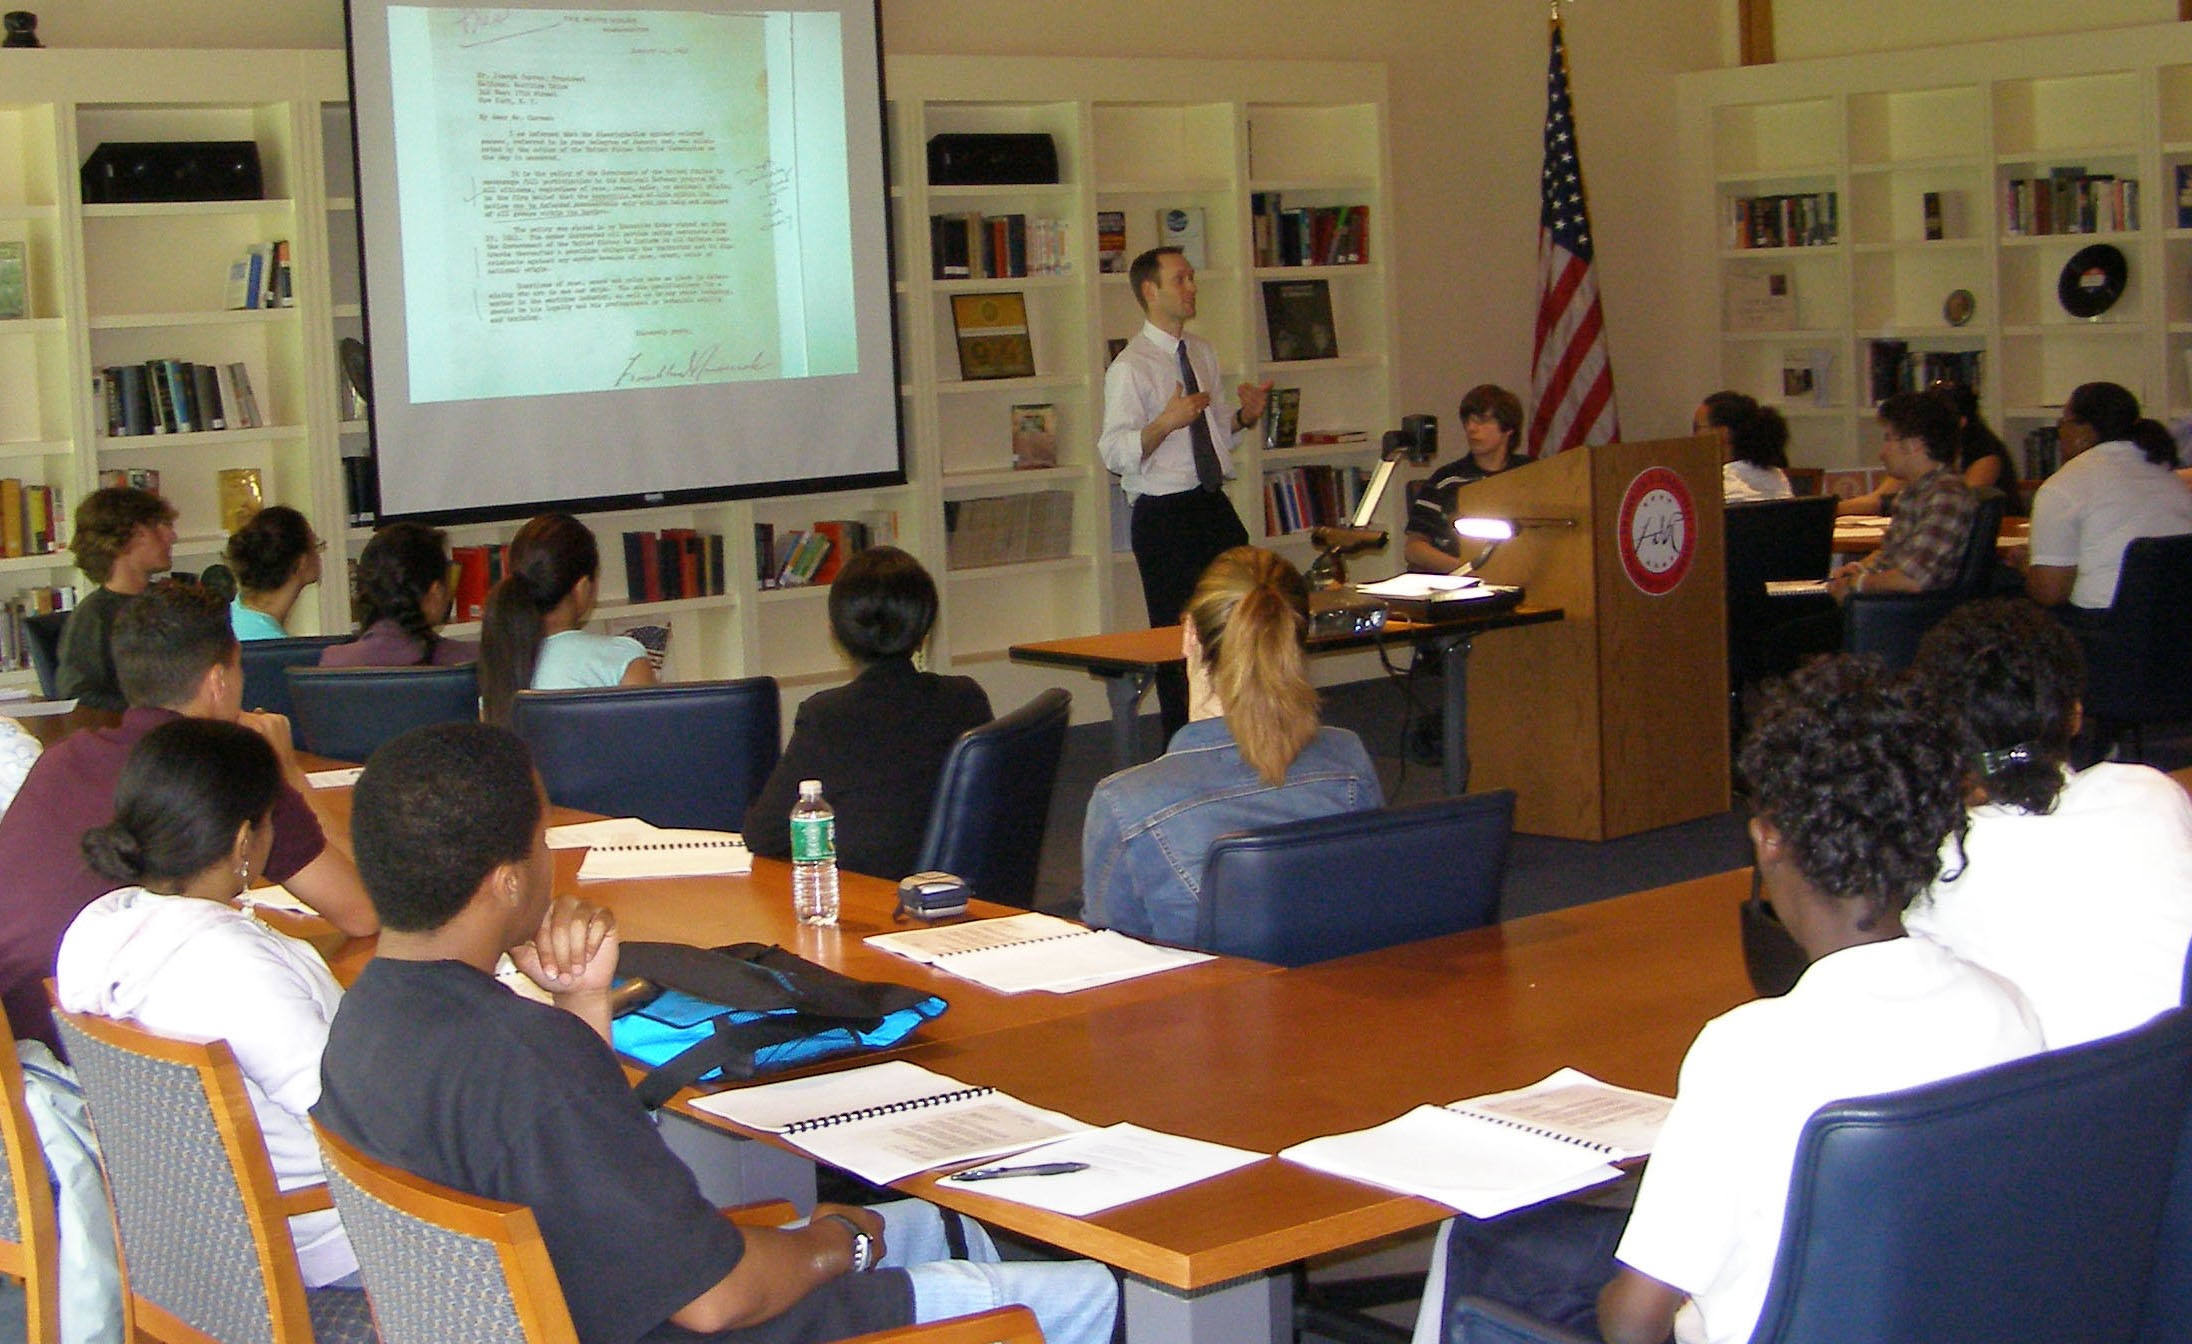 A library instruction session at Mesa Campus - Benedictine University